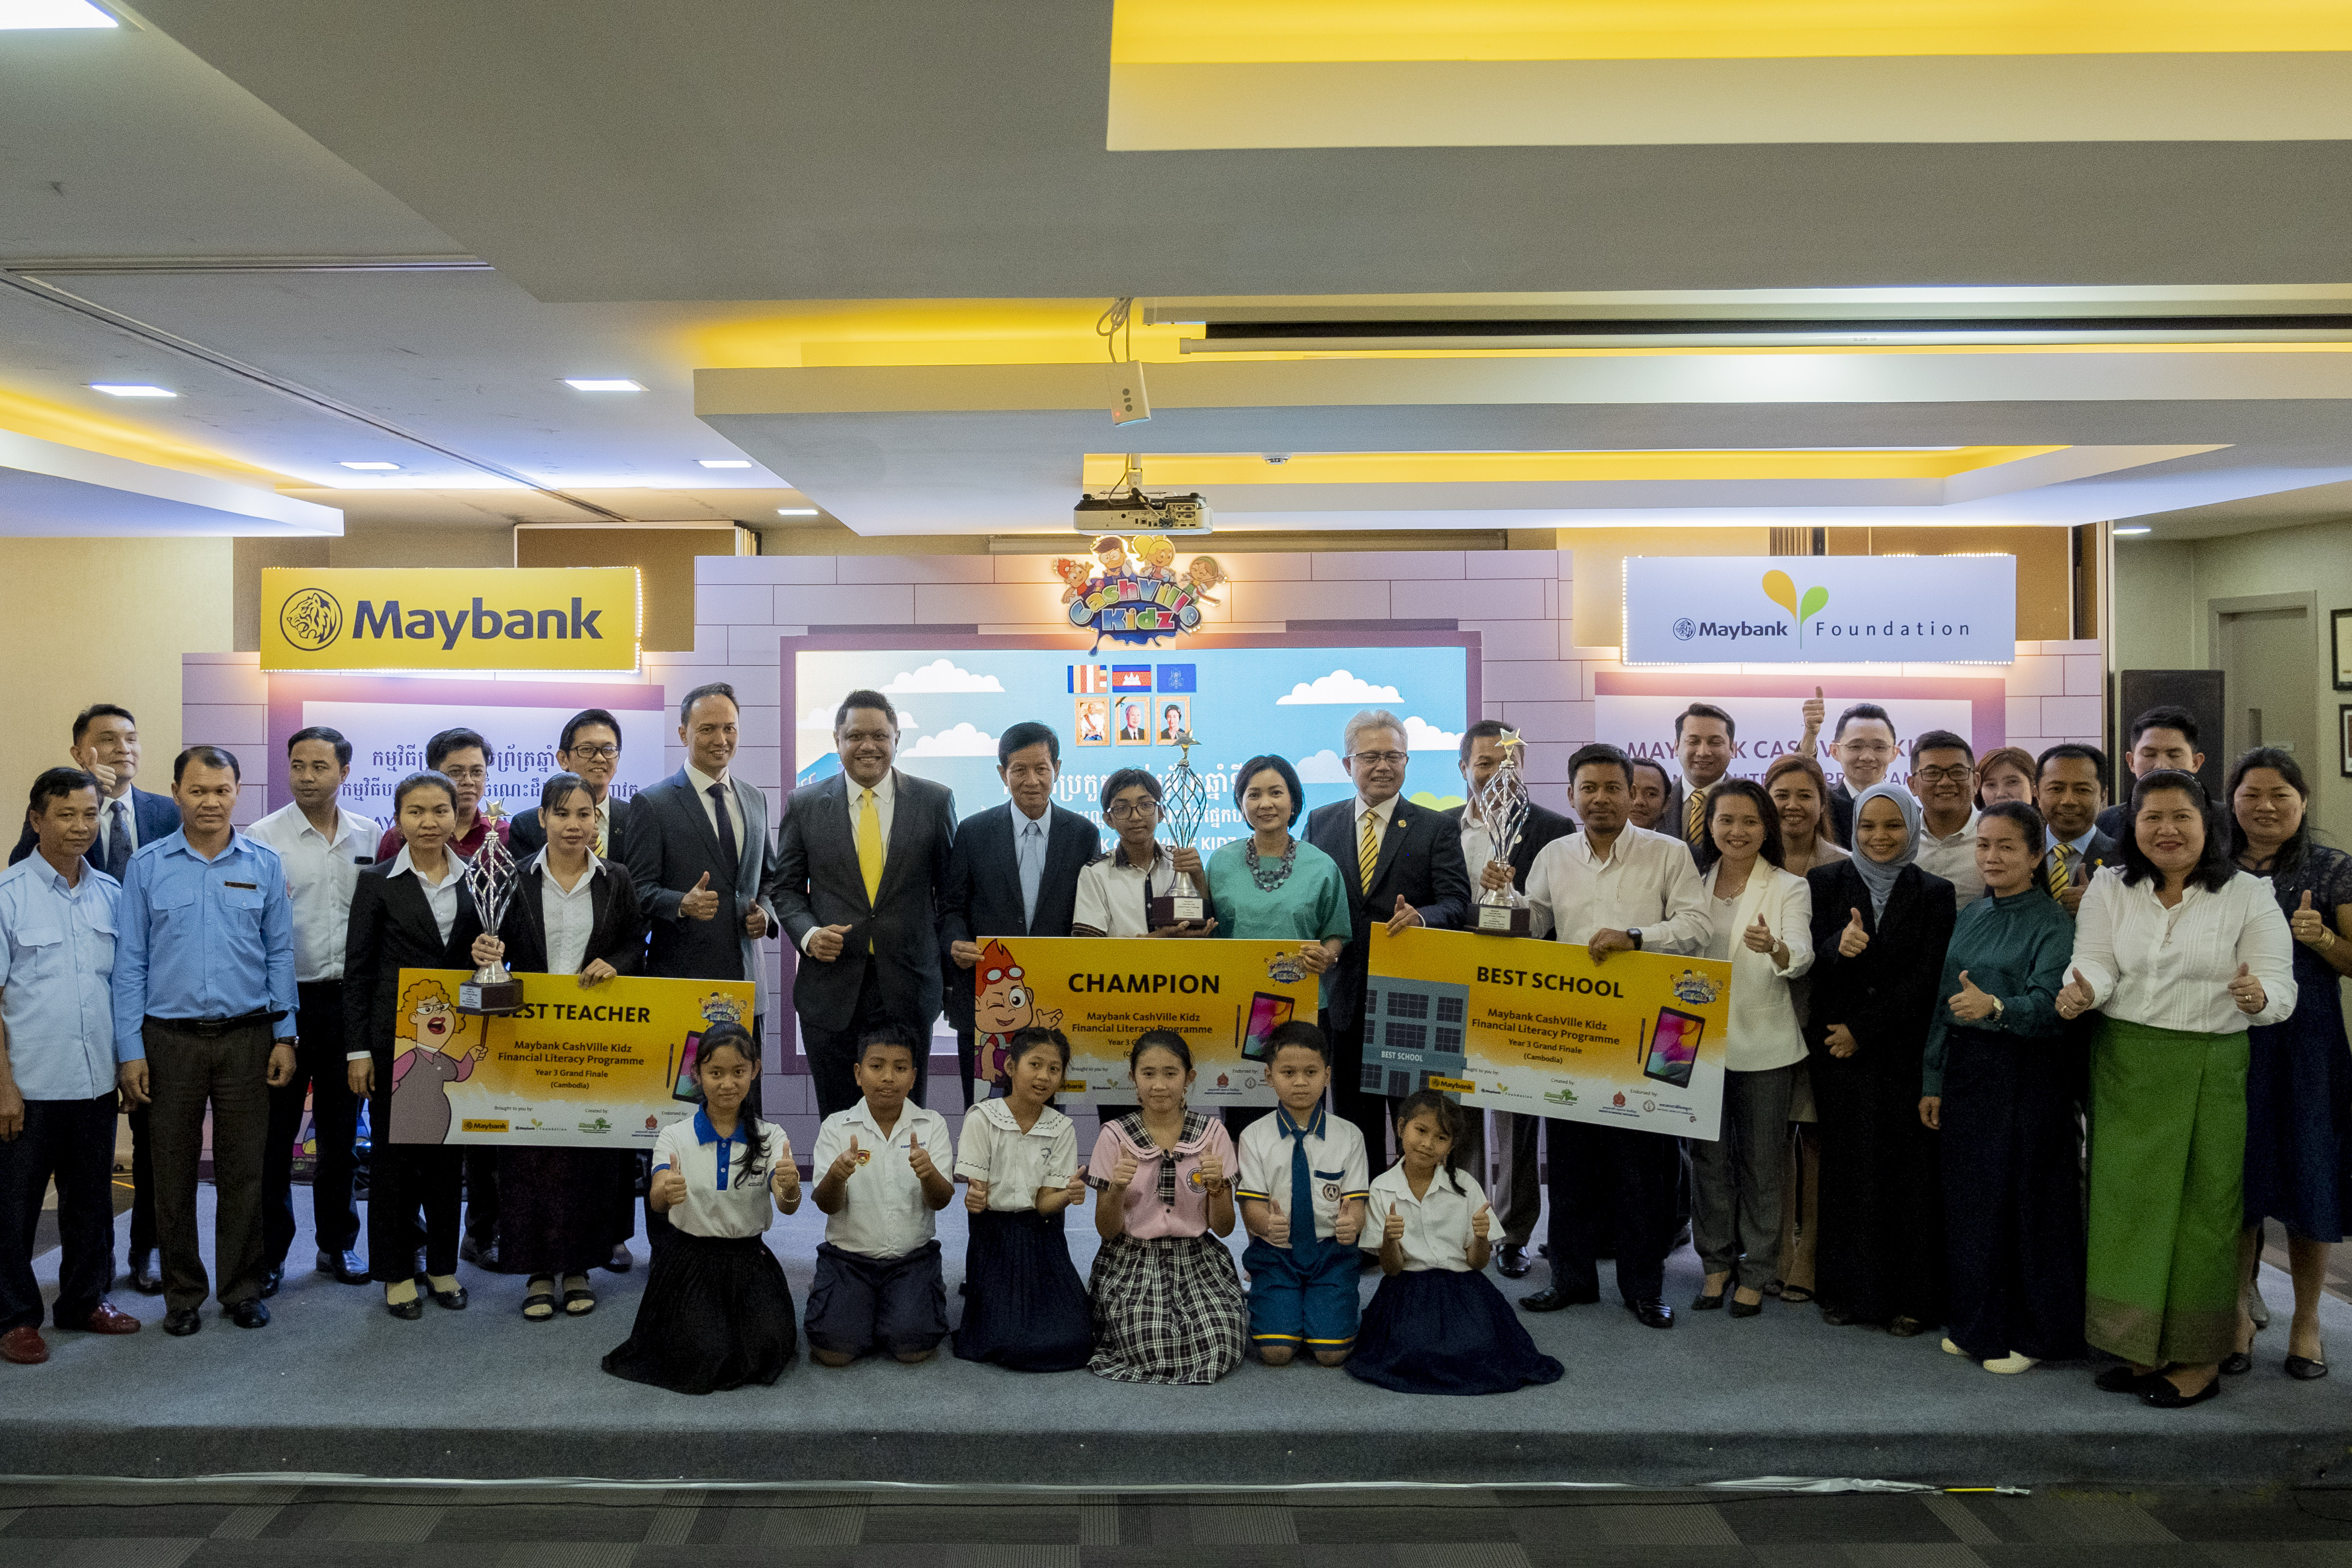 Maybank Honours Financial Literacy Champions at the Grand Finale of CashVille Kidz Programme